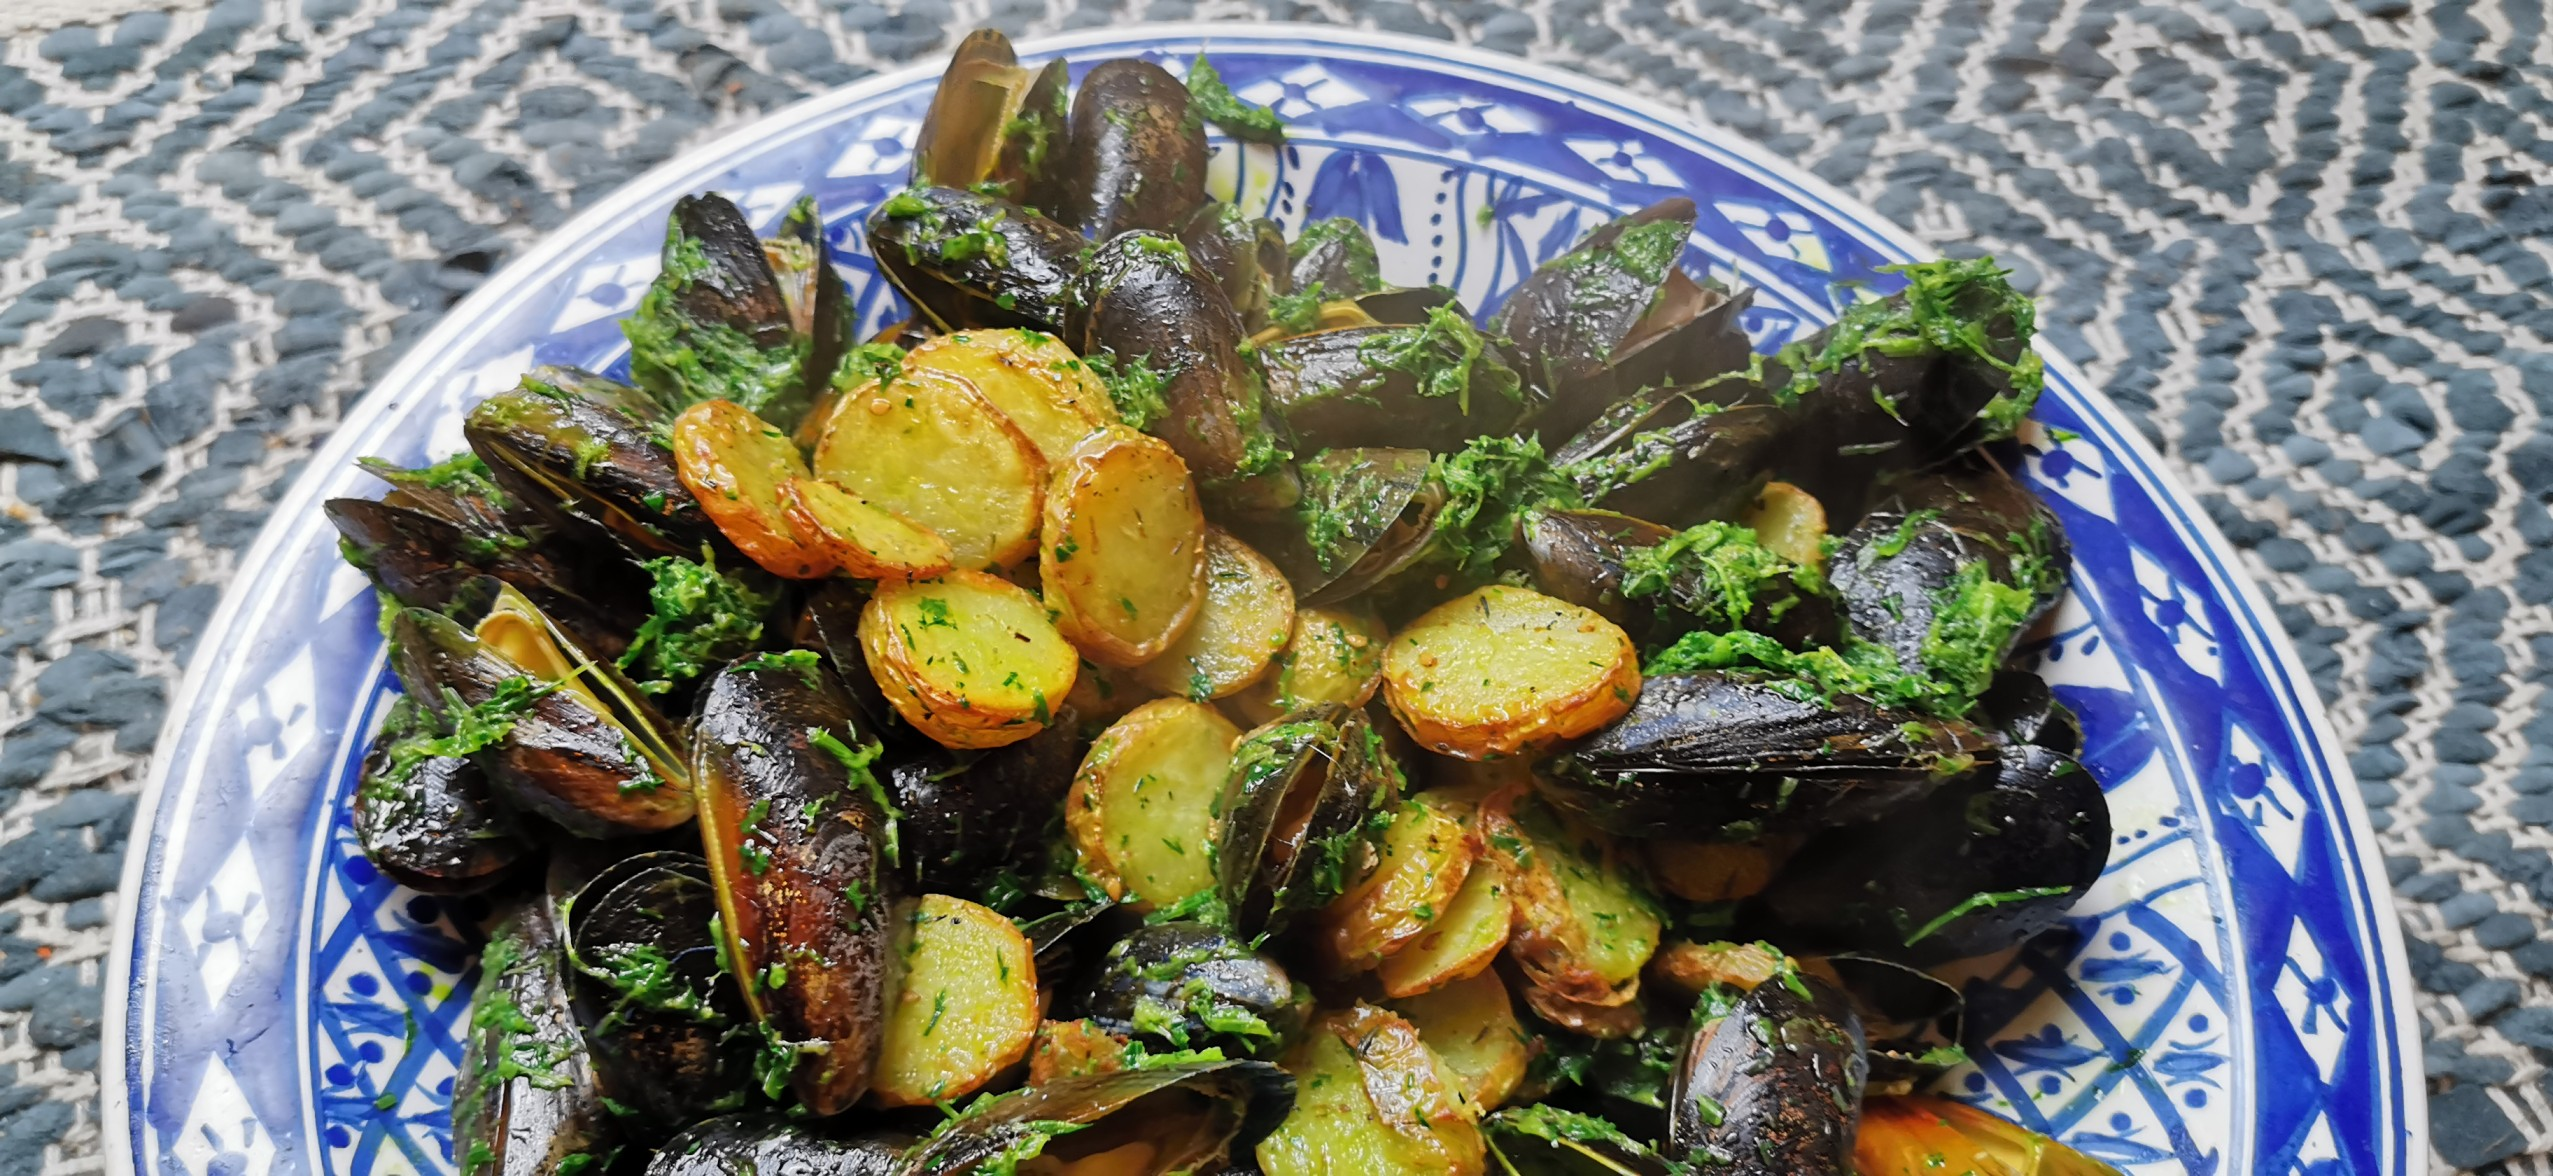 Moules au beurre vert`- Properfood.ie